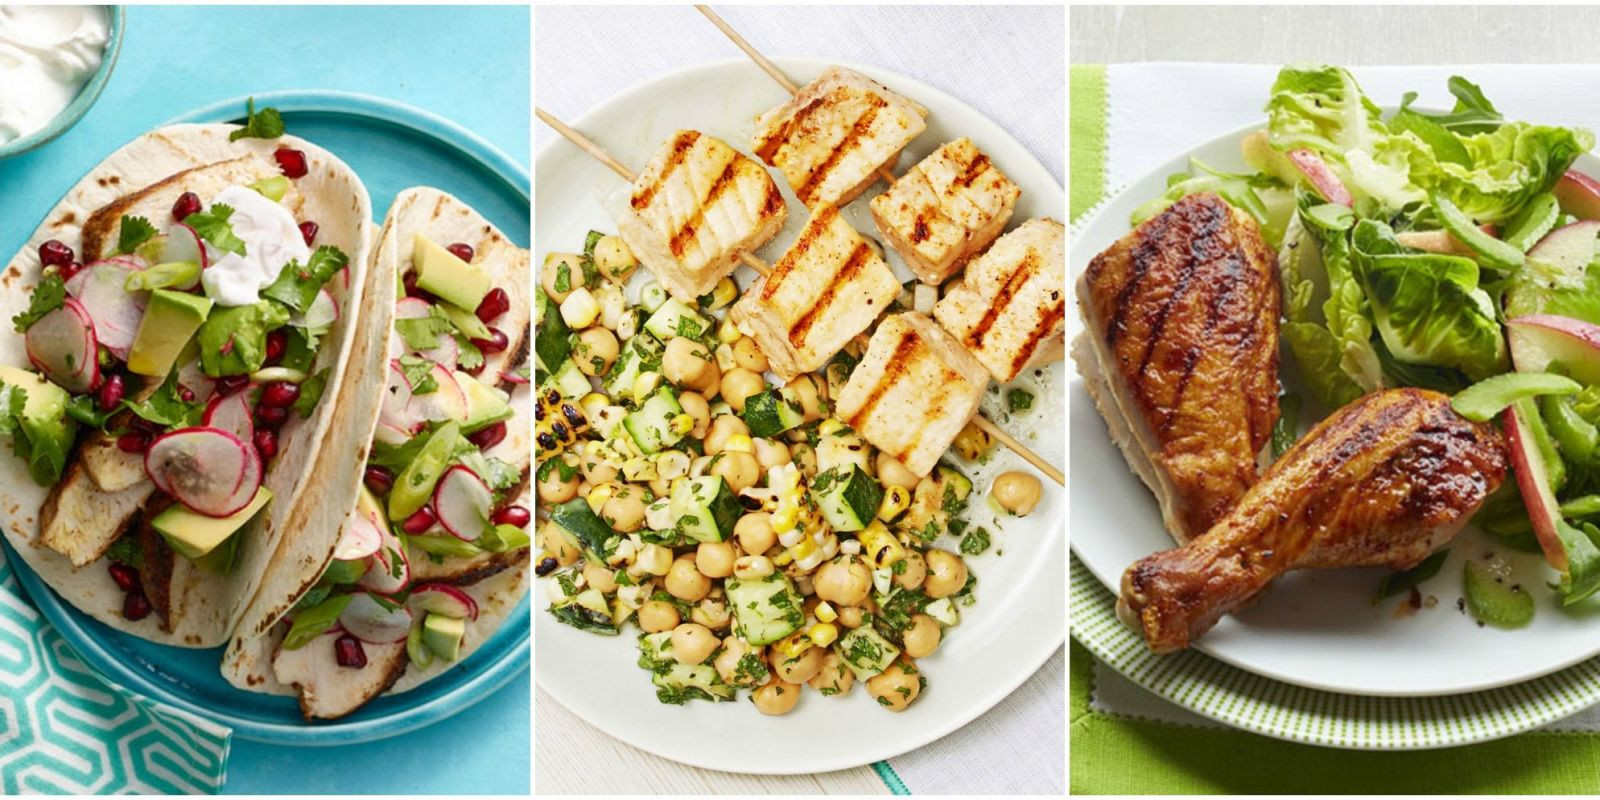 Healthy Summer Dinner  60 Best Summer Dinner Recipes Quick and Easy Summer Meal